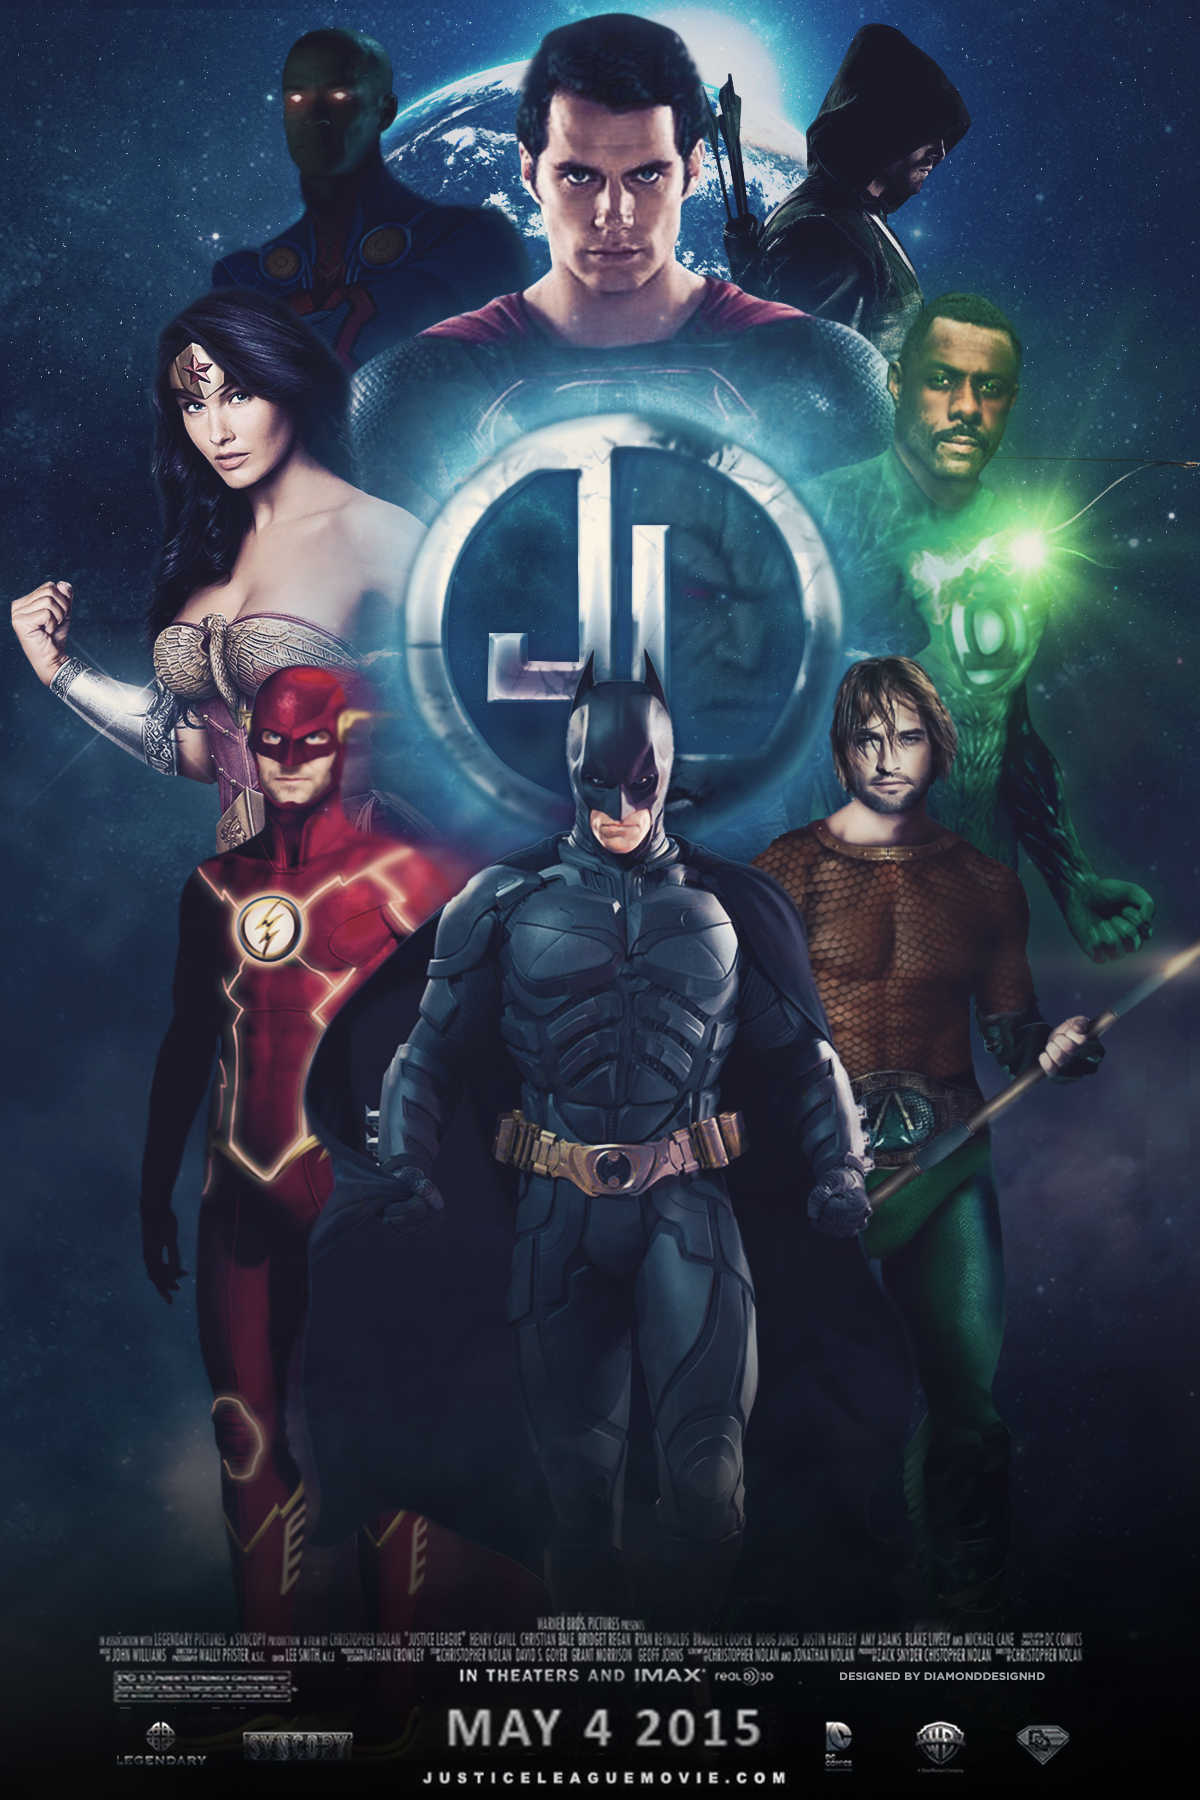 ... Collections Like Justice League (2017) Green Lantern william hill william hill williamhill beachvolleyball live Poster by Enoch16